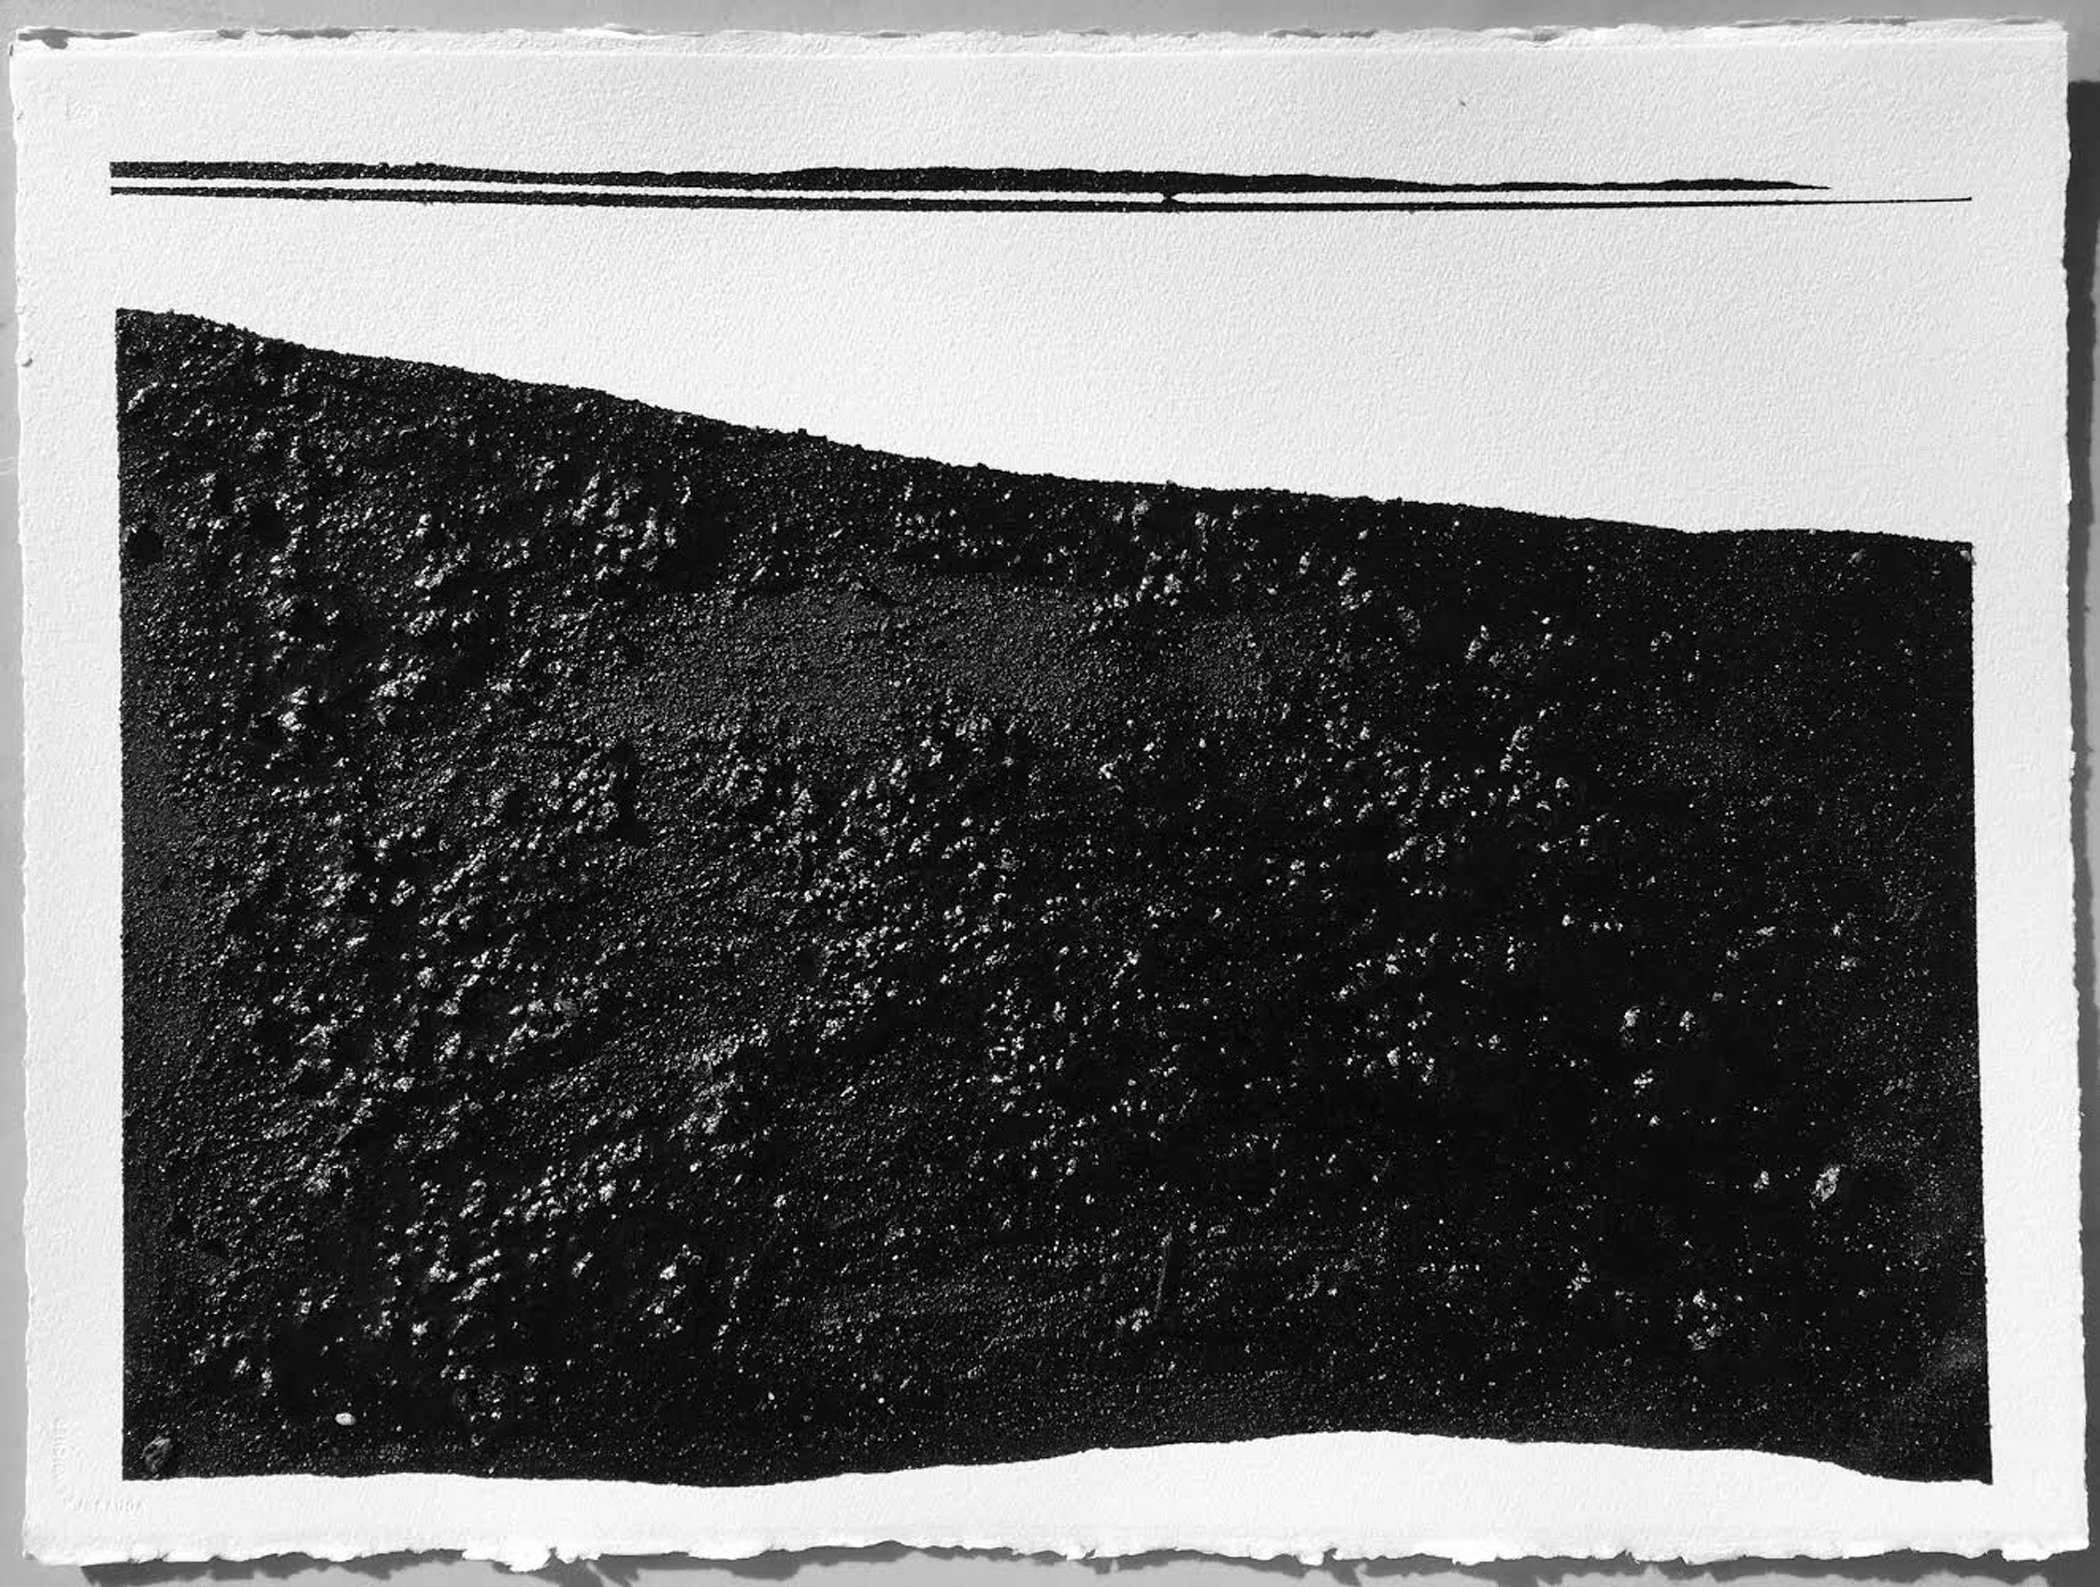 Mirror or Mirage XX, 2016, asphalt, sand, tar on paper, 22 x 30""